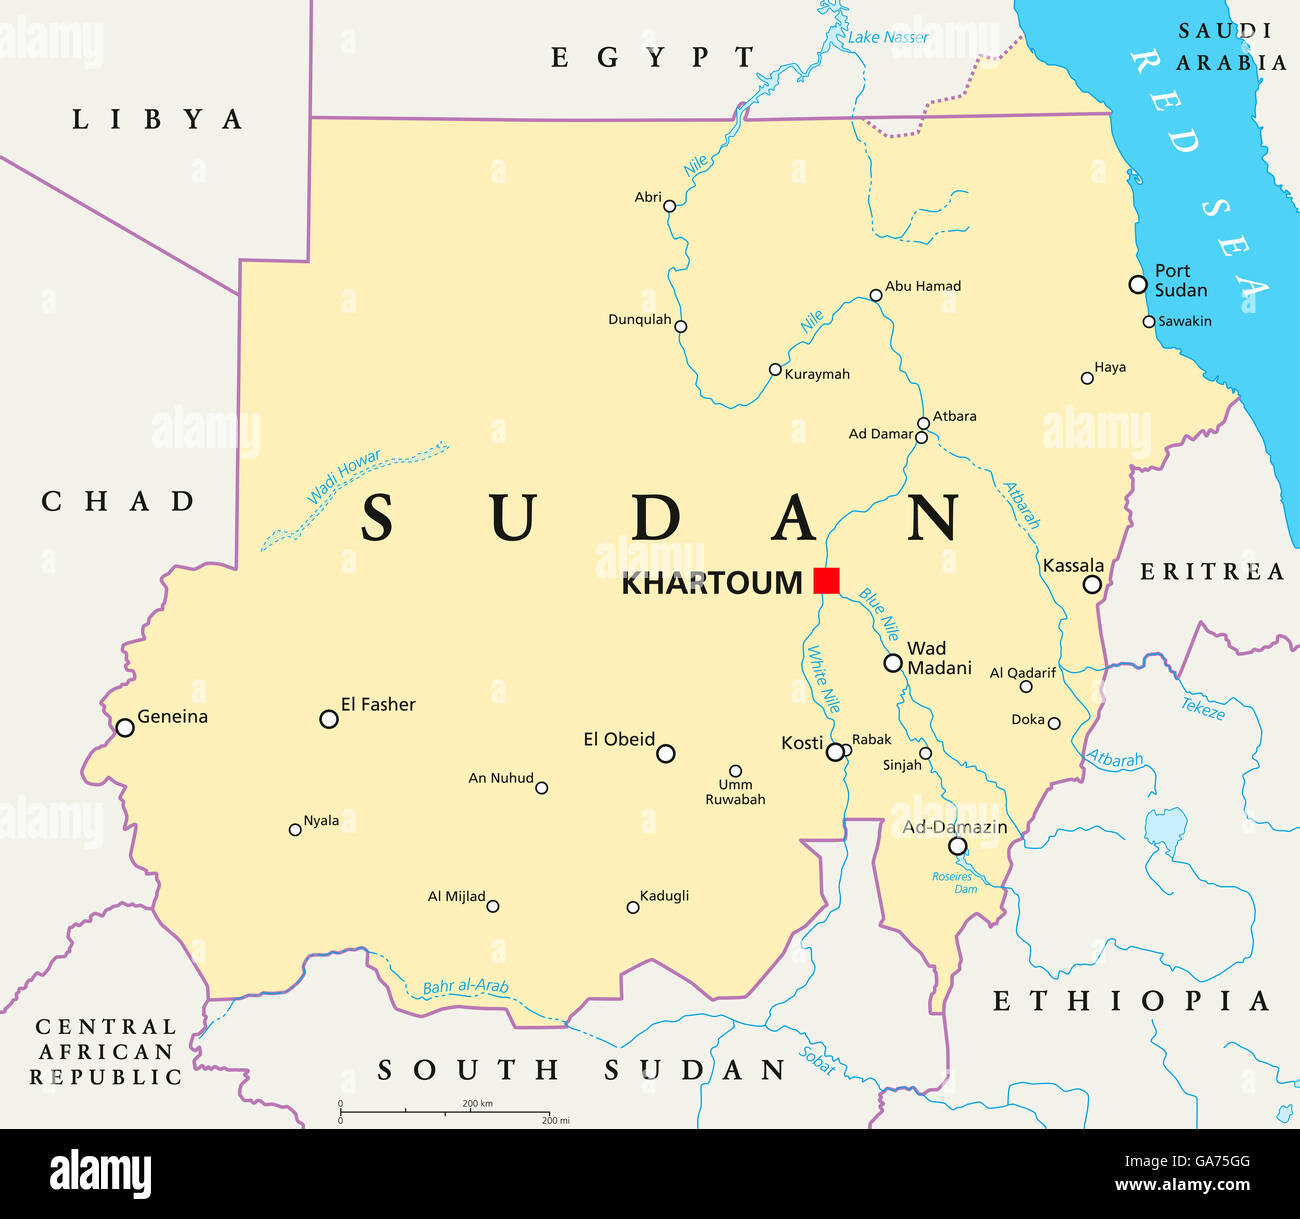 Sudan Political Map With Capital Khartoum National Borders Stock